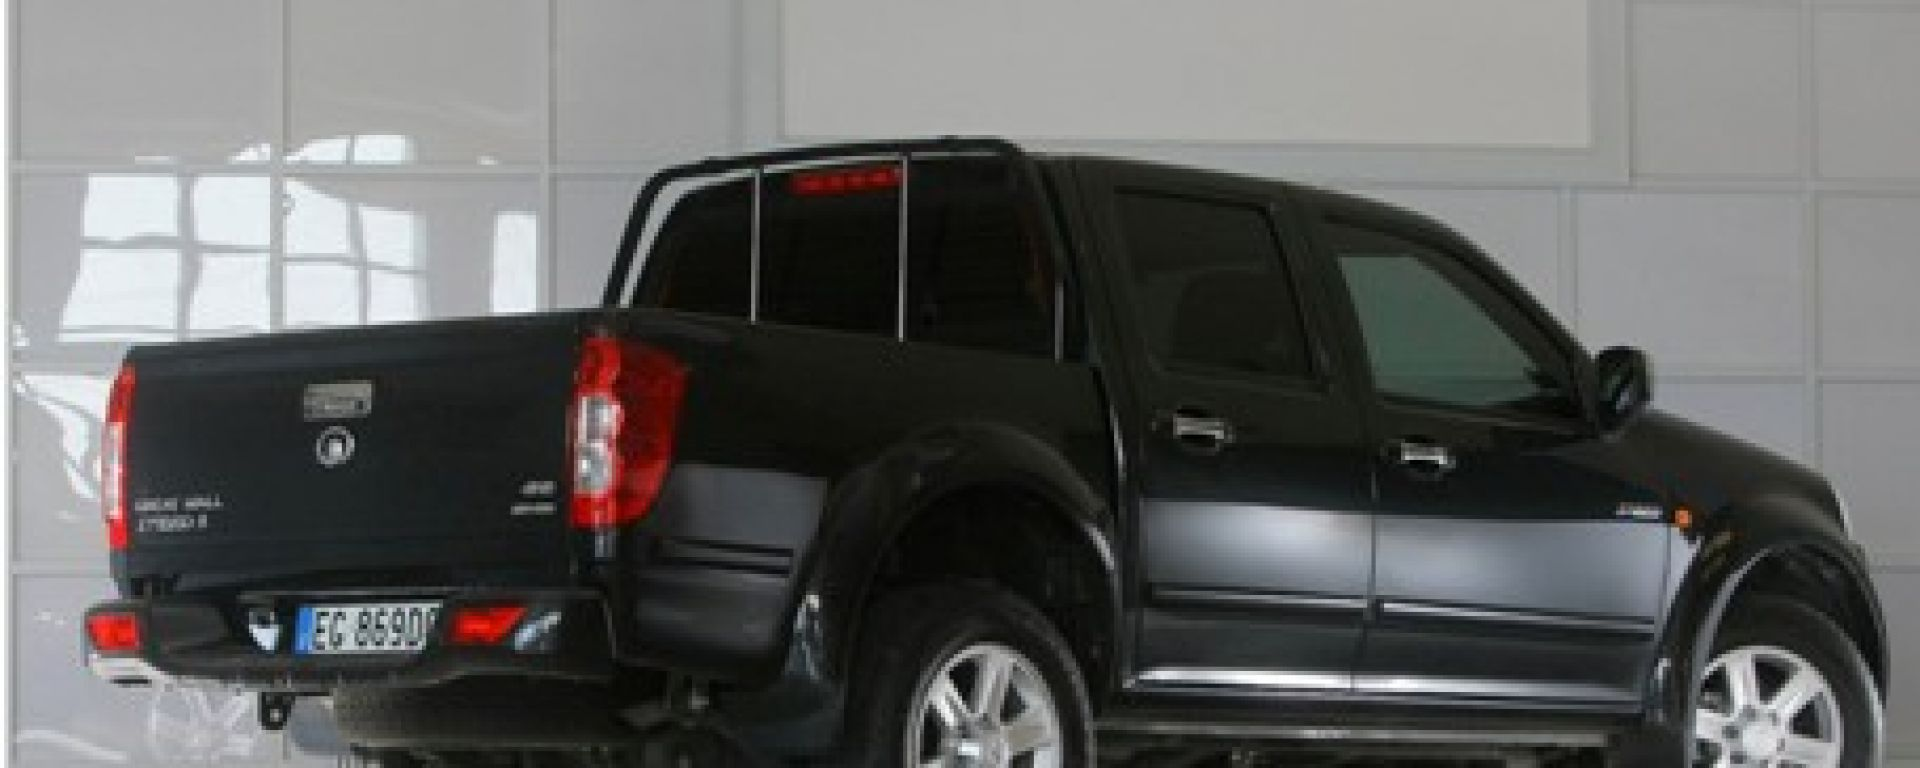 Great Wall Steed 5 diesel